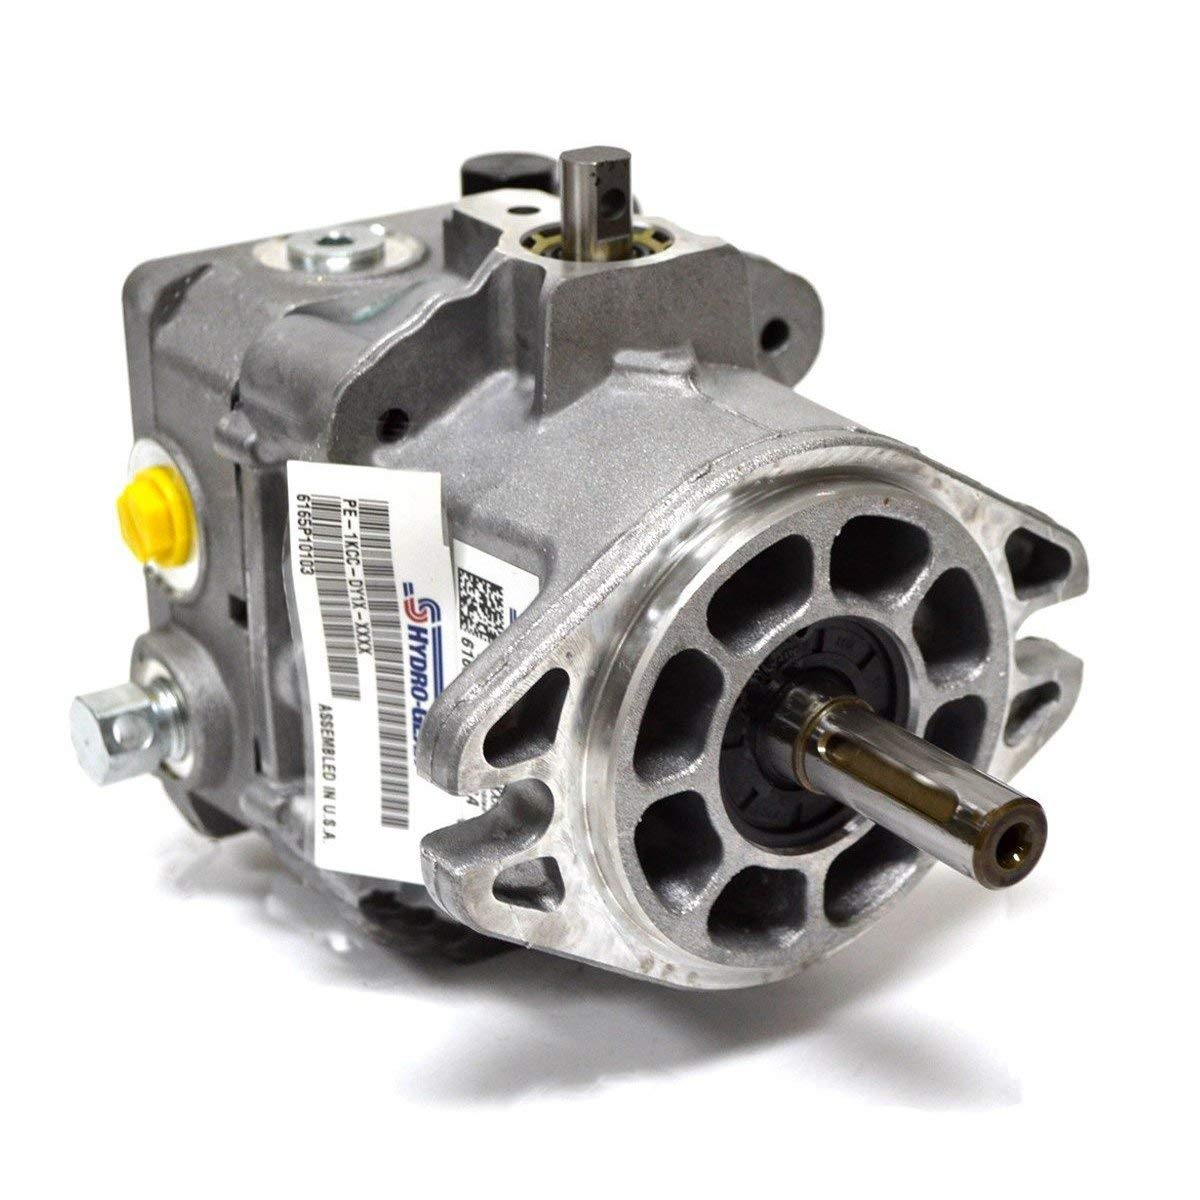 Hydro Gear Replacement Pump 10cc (Right) for Snapper SPLH173KW Lawn Mower & Others / 7011223, PG-1HCC-DY1X-XXXX